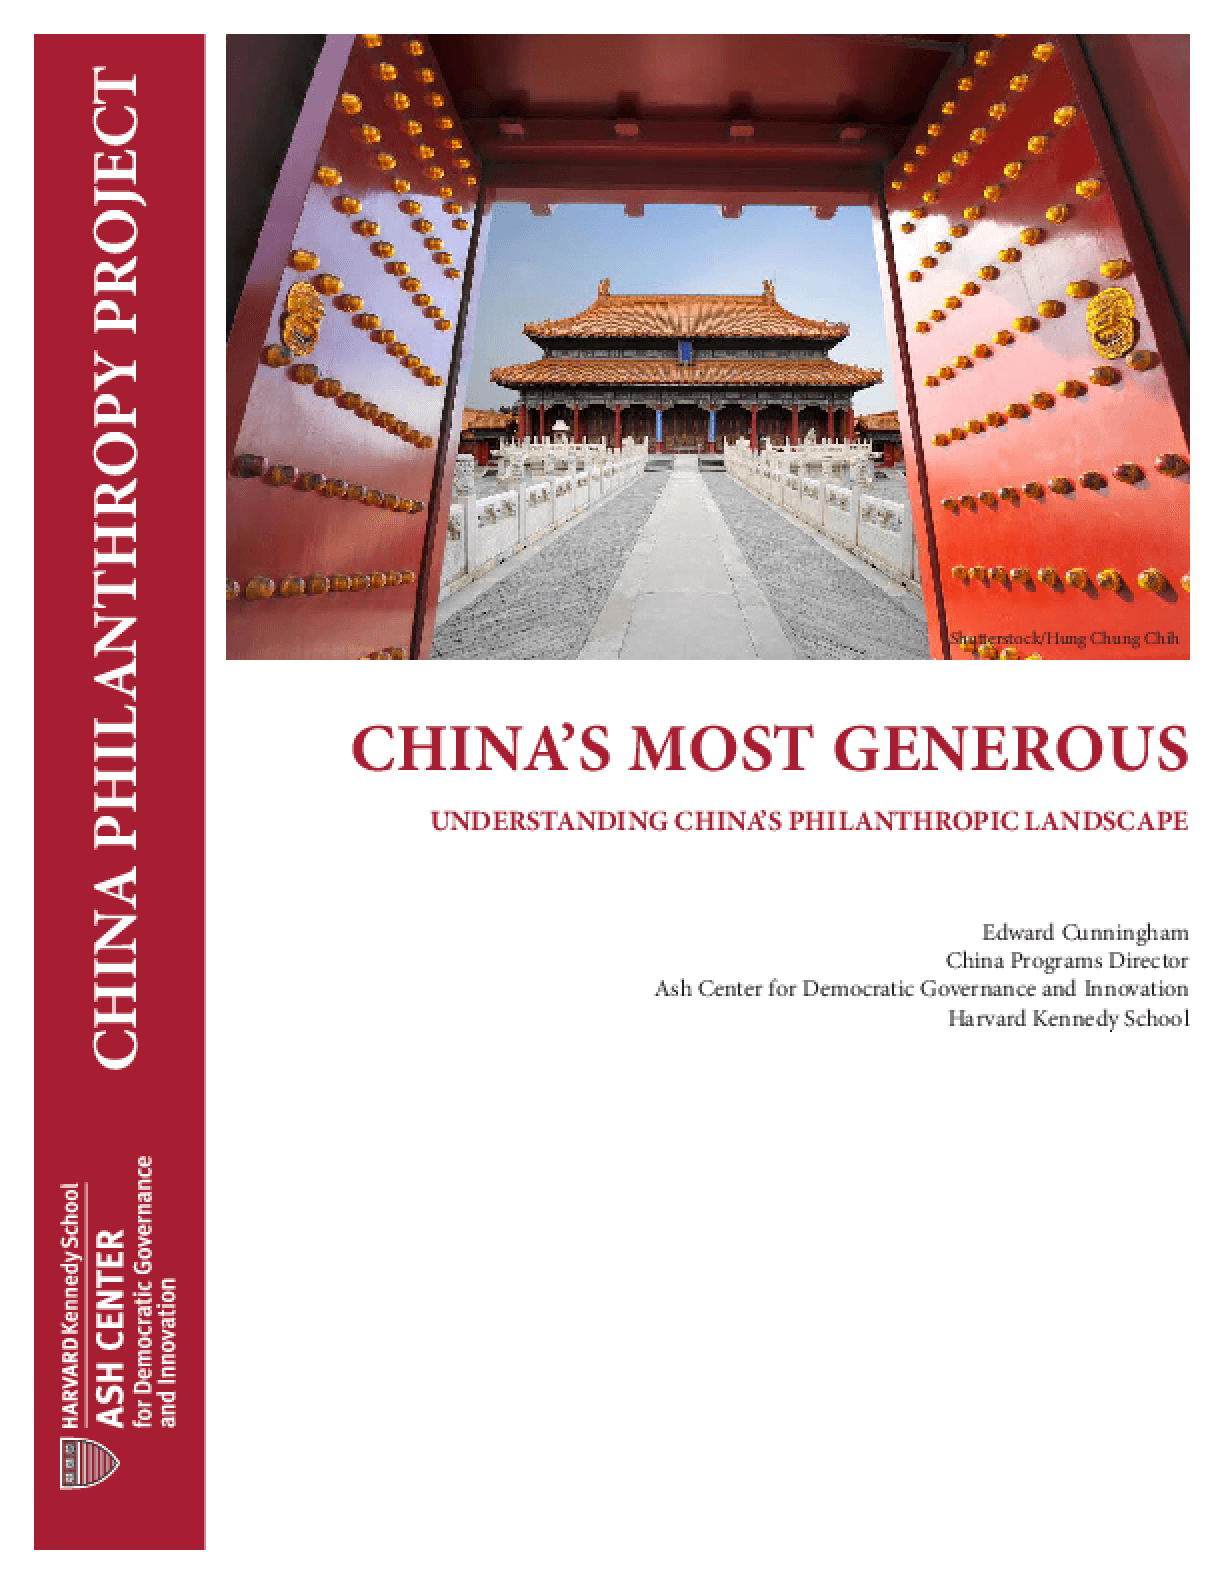 China's Most Generous: Understanding China's Philanthropic Landscape